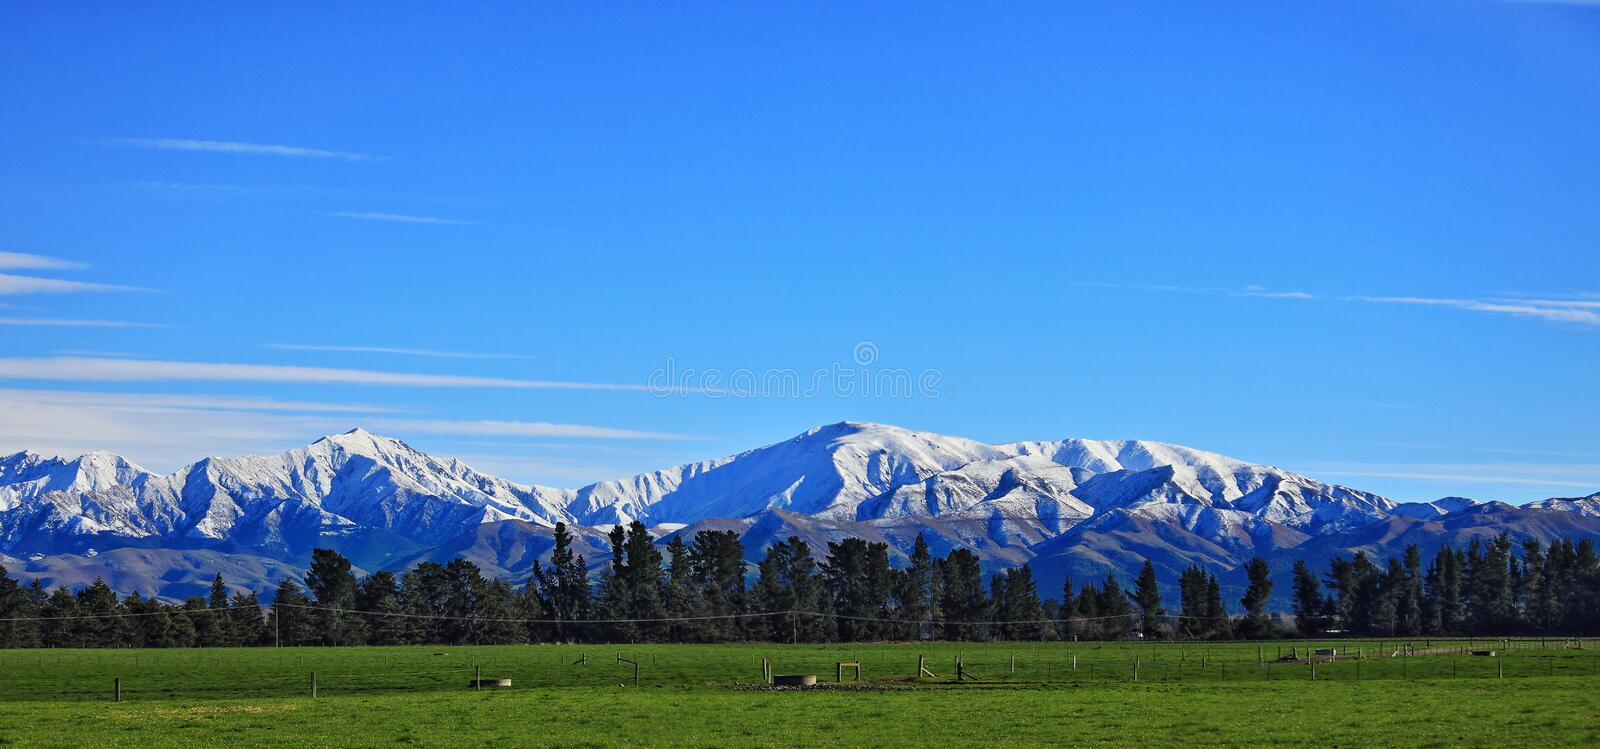 Rural Scenery from Ashburton Christchurch New Zealand. South Island scenic highway sightseeing. The Road between Ashburton Christchurch yield some beautiful royalty free stock photography